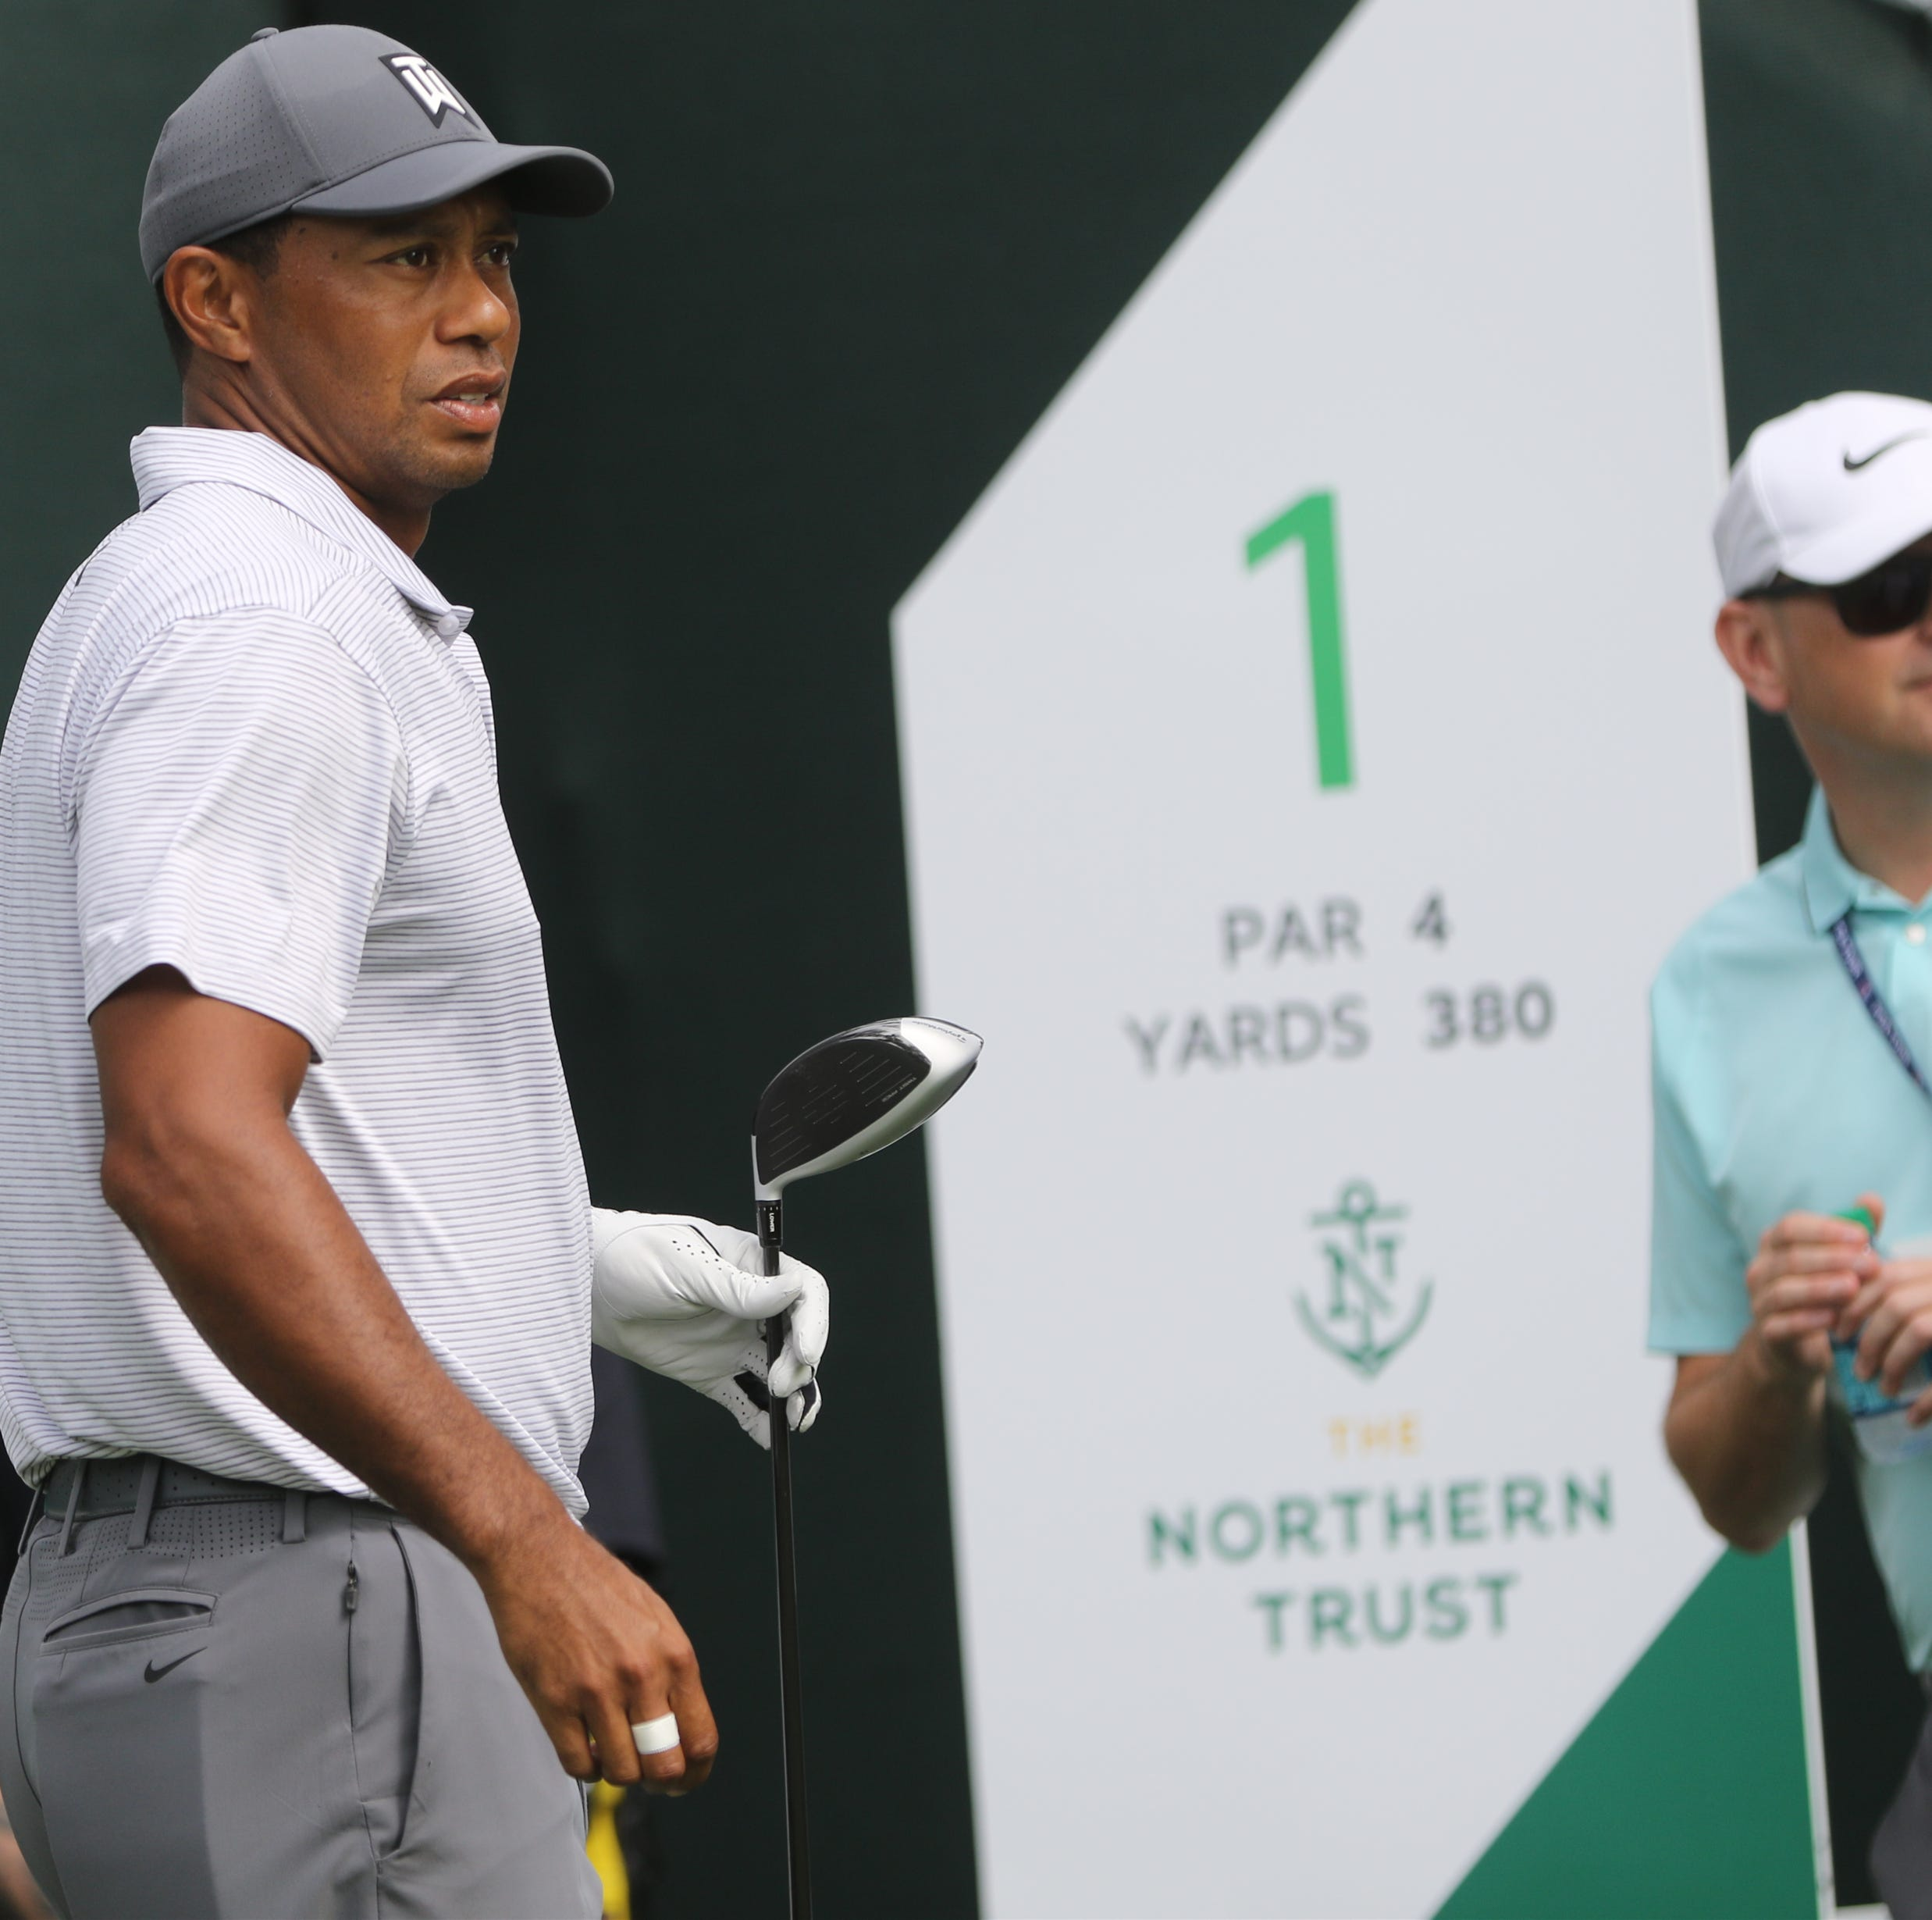 Northern Trust tee times: Groups to watch at PGA Tour event in Paramus